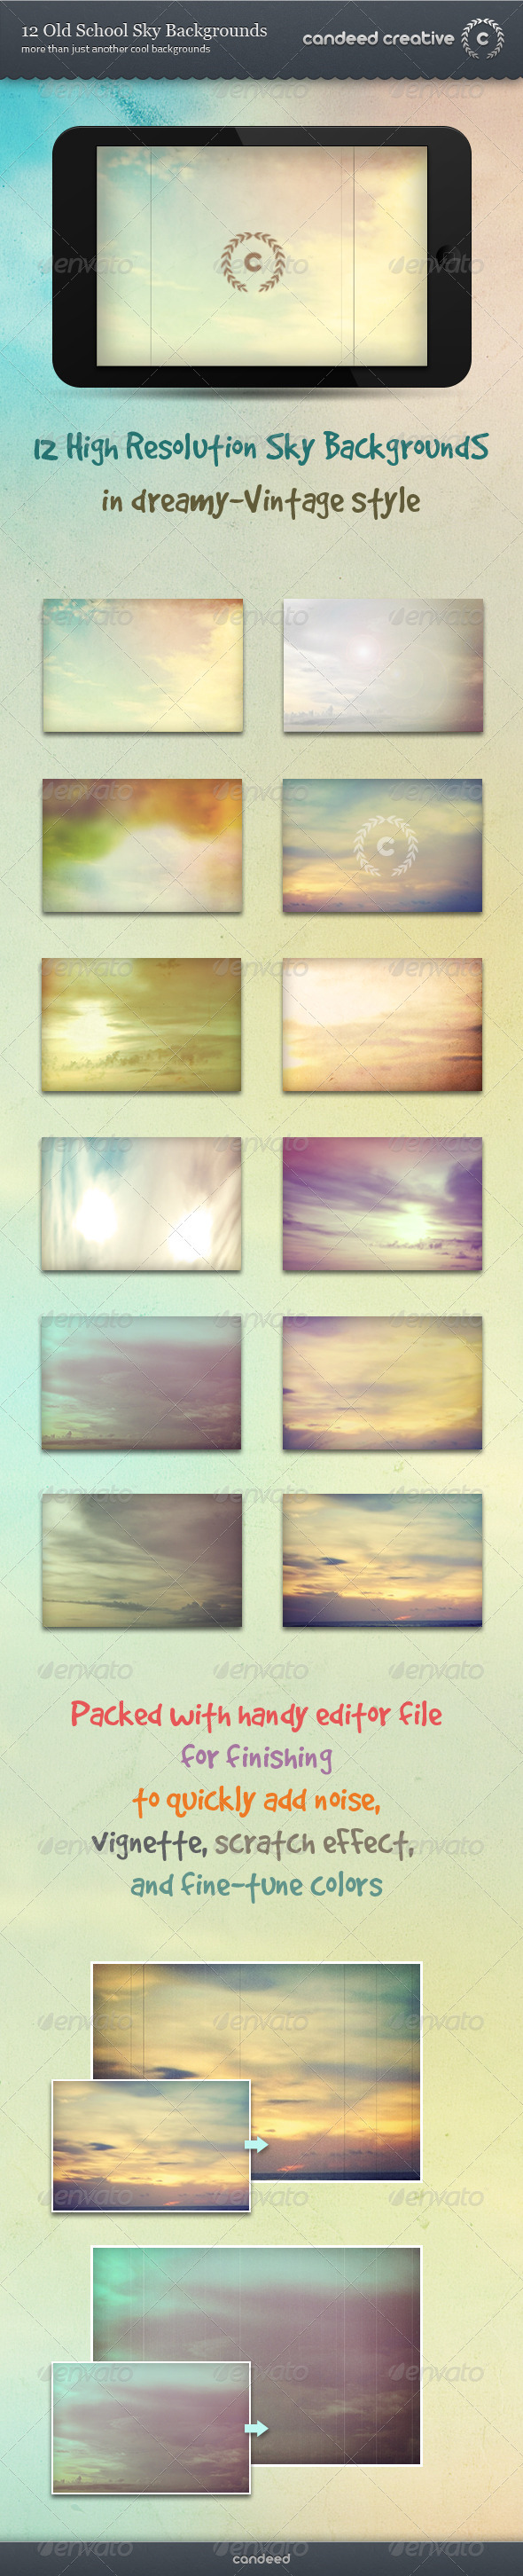 12 Old School Sky Backgrounds - Backgrounds Graphics